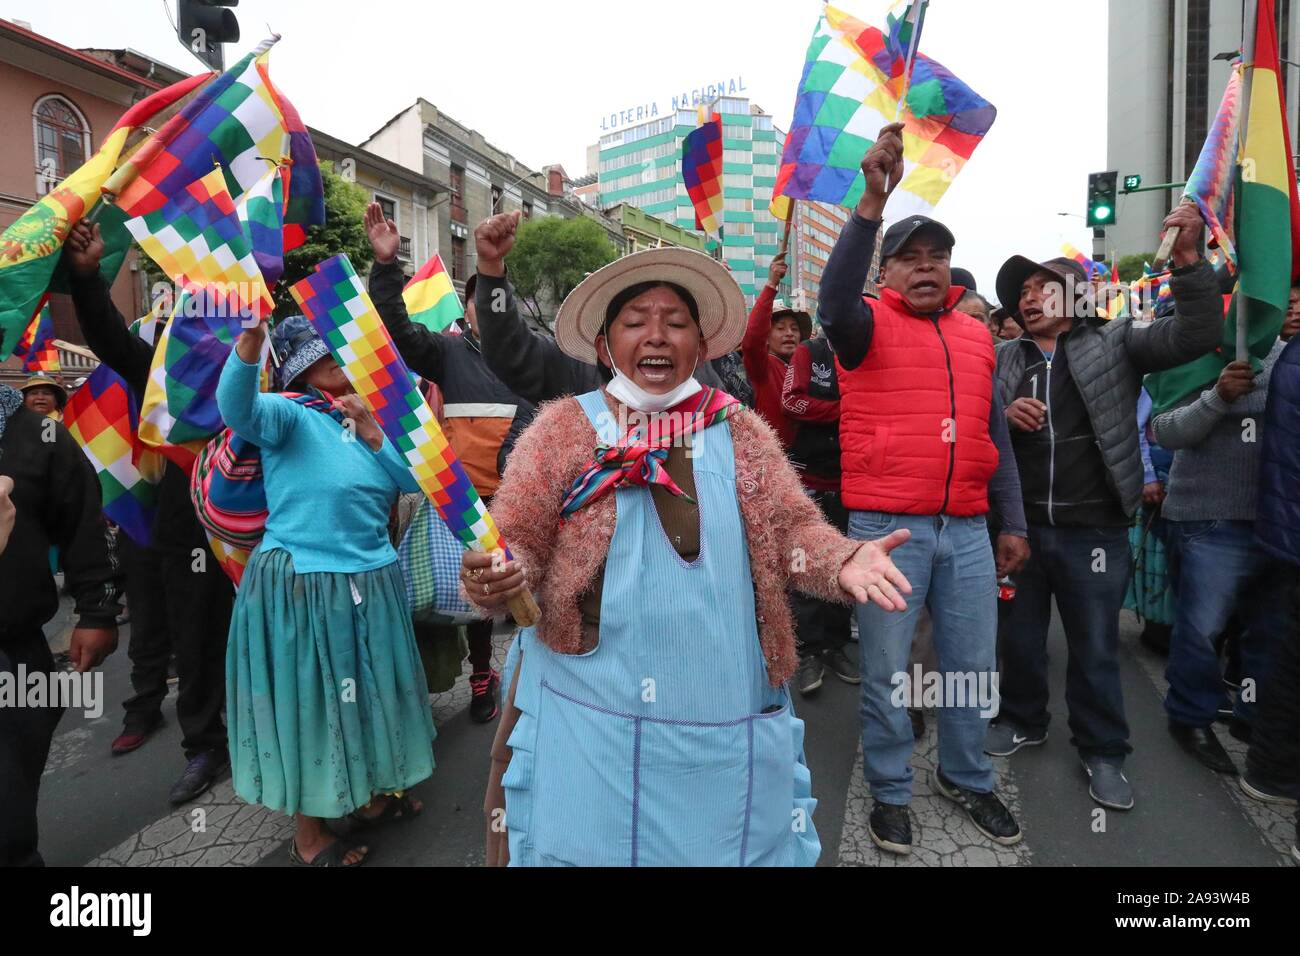 La Paz, Bolivia. 12th Nov, 2019. Supporters of the former president of Bolivia, Evo Morales, demonstrate in La Paz, Bolivia 12 November 2019, carrying the Whipala, a flag that represents the country's indigenous. Credit: Martin Alipaz/EFE/Alamy Live News Stock Photo